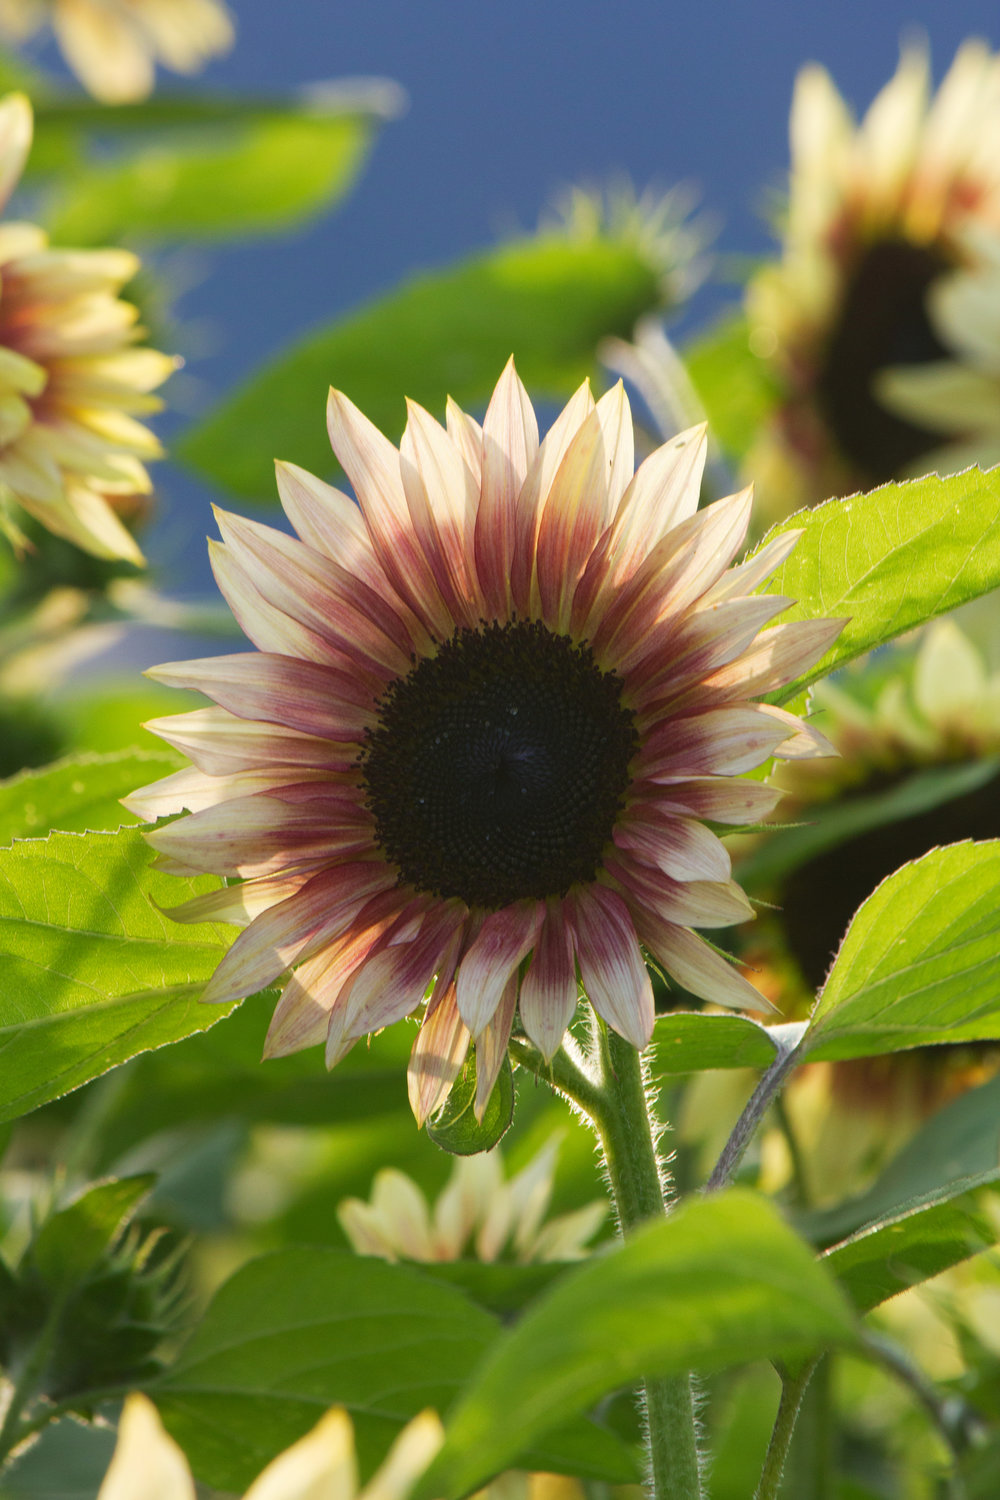 A Visit to the Chilliwack Sunflower Festival by Locally Obsessed